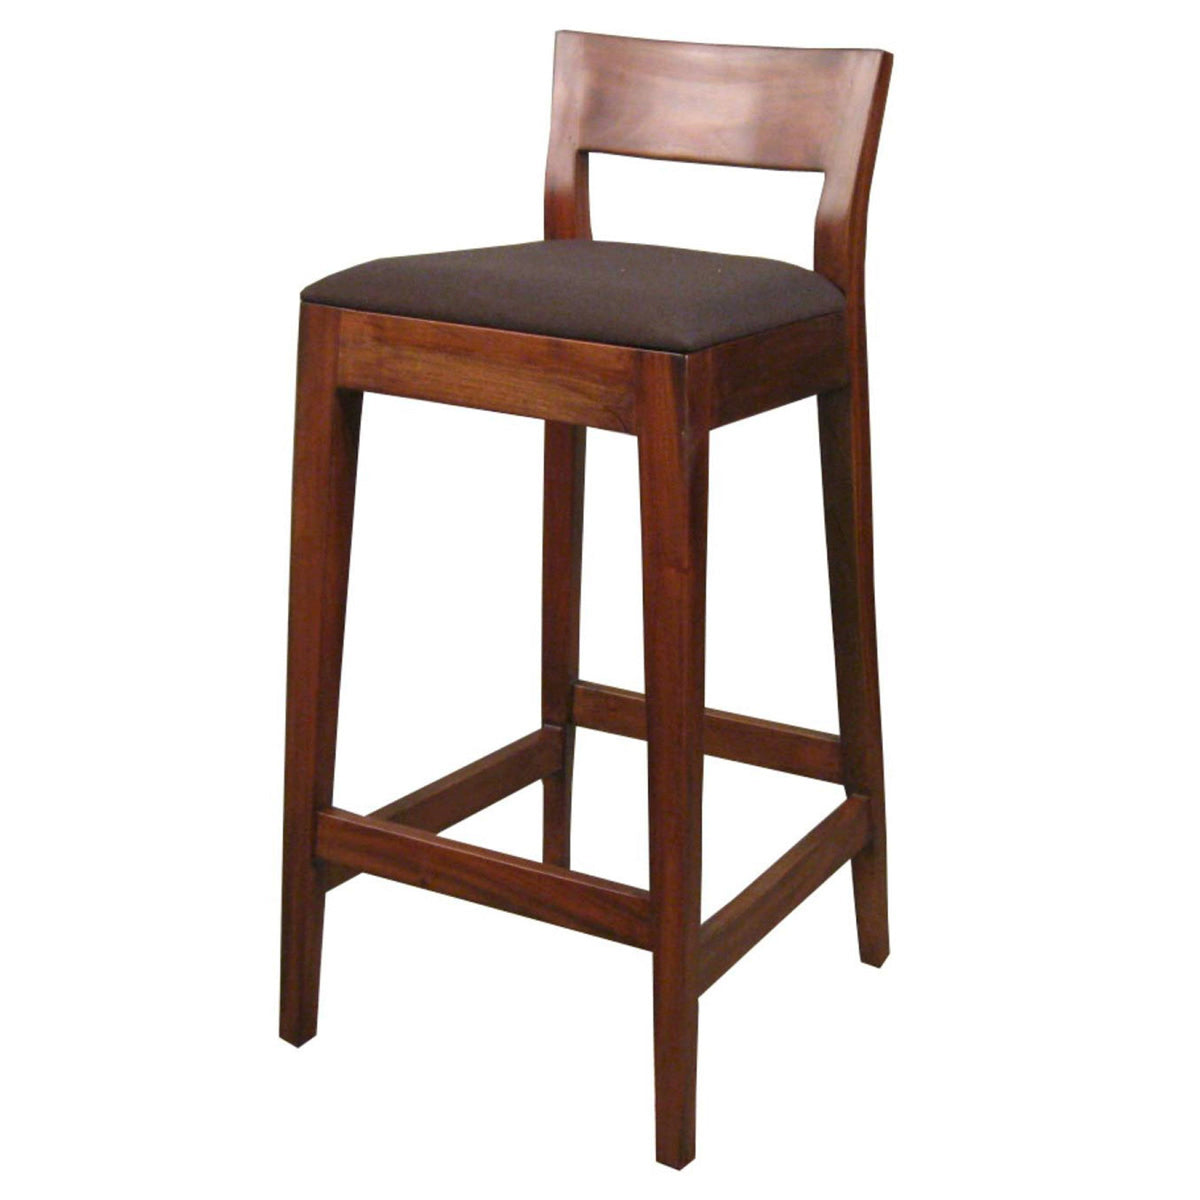 Dolores Counter Stool - Odessa by New Pacific Direct - 878532-254